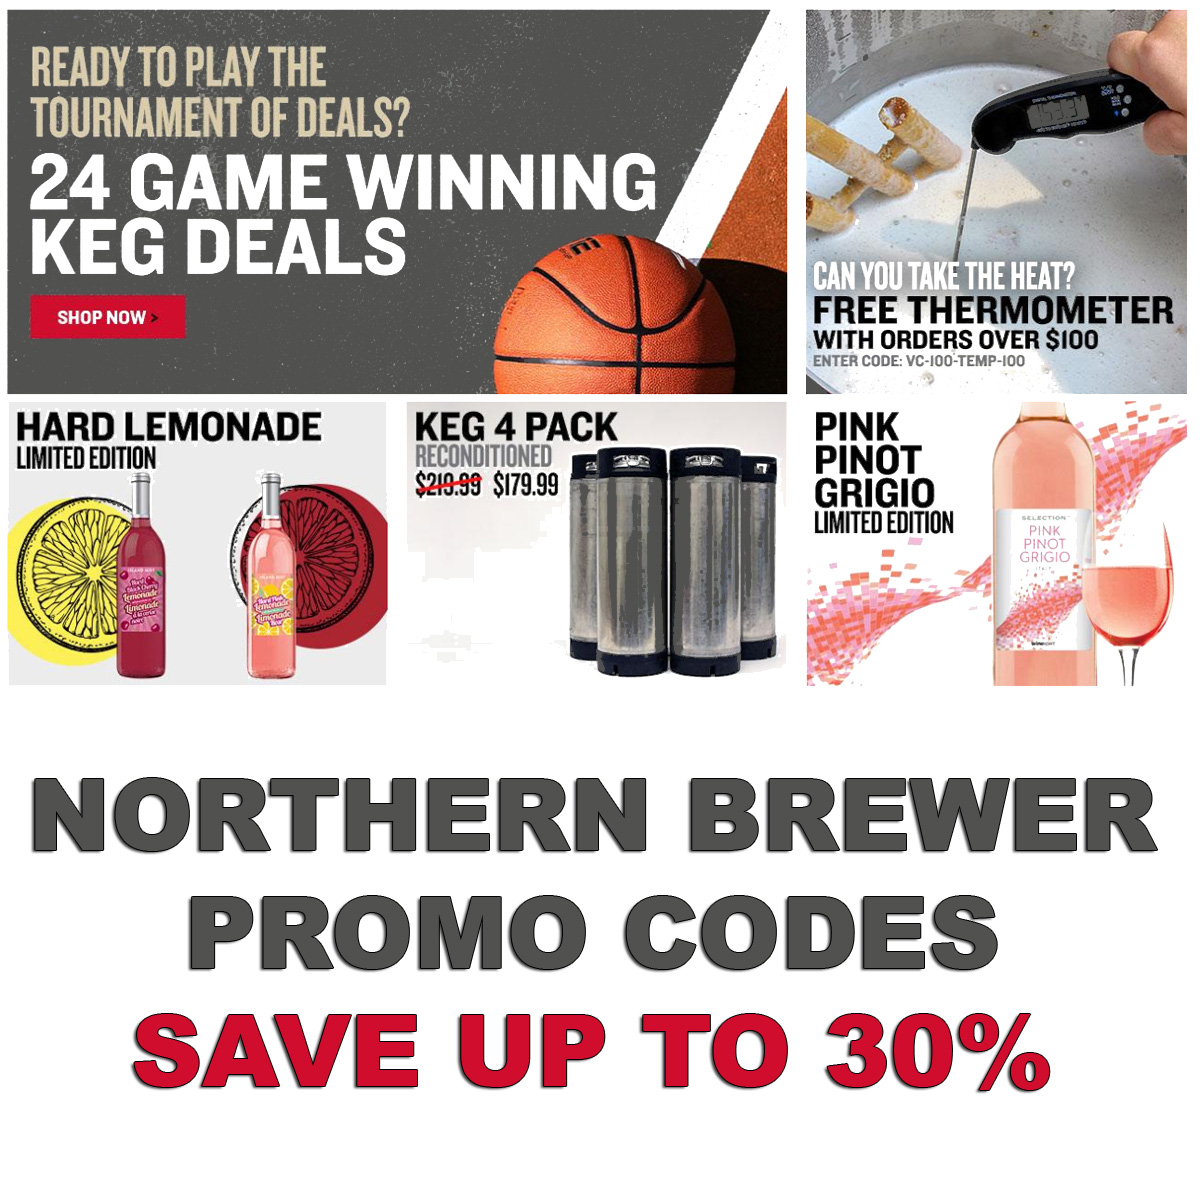 Northern Brewer New Promo Codes for NorthernBrewer.com, save upto 30% Coupon Code